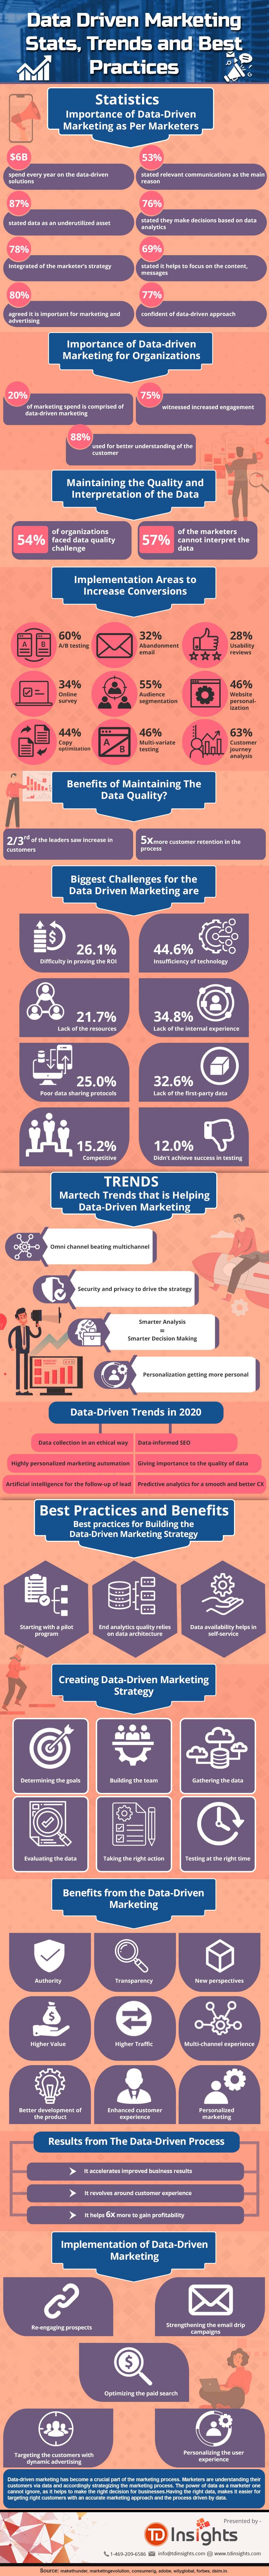 Marketing Driven by Data – Statistics, Trends and Best Practices #infographic